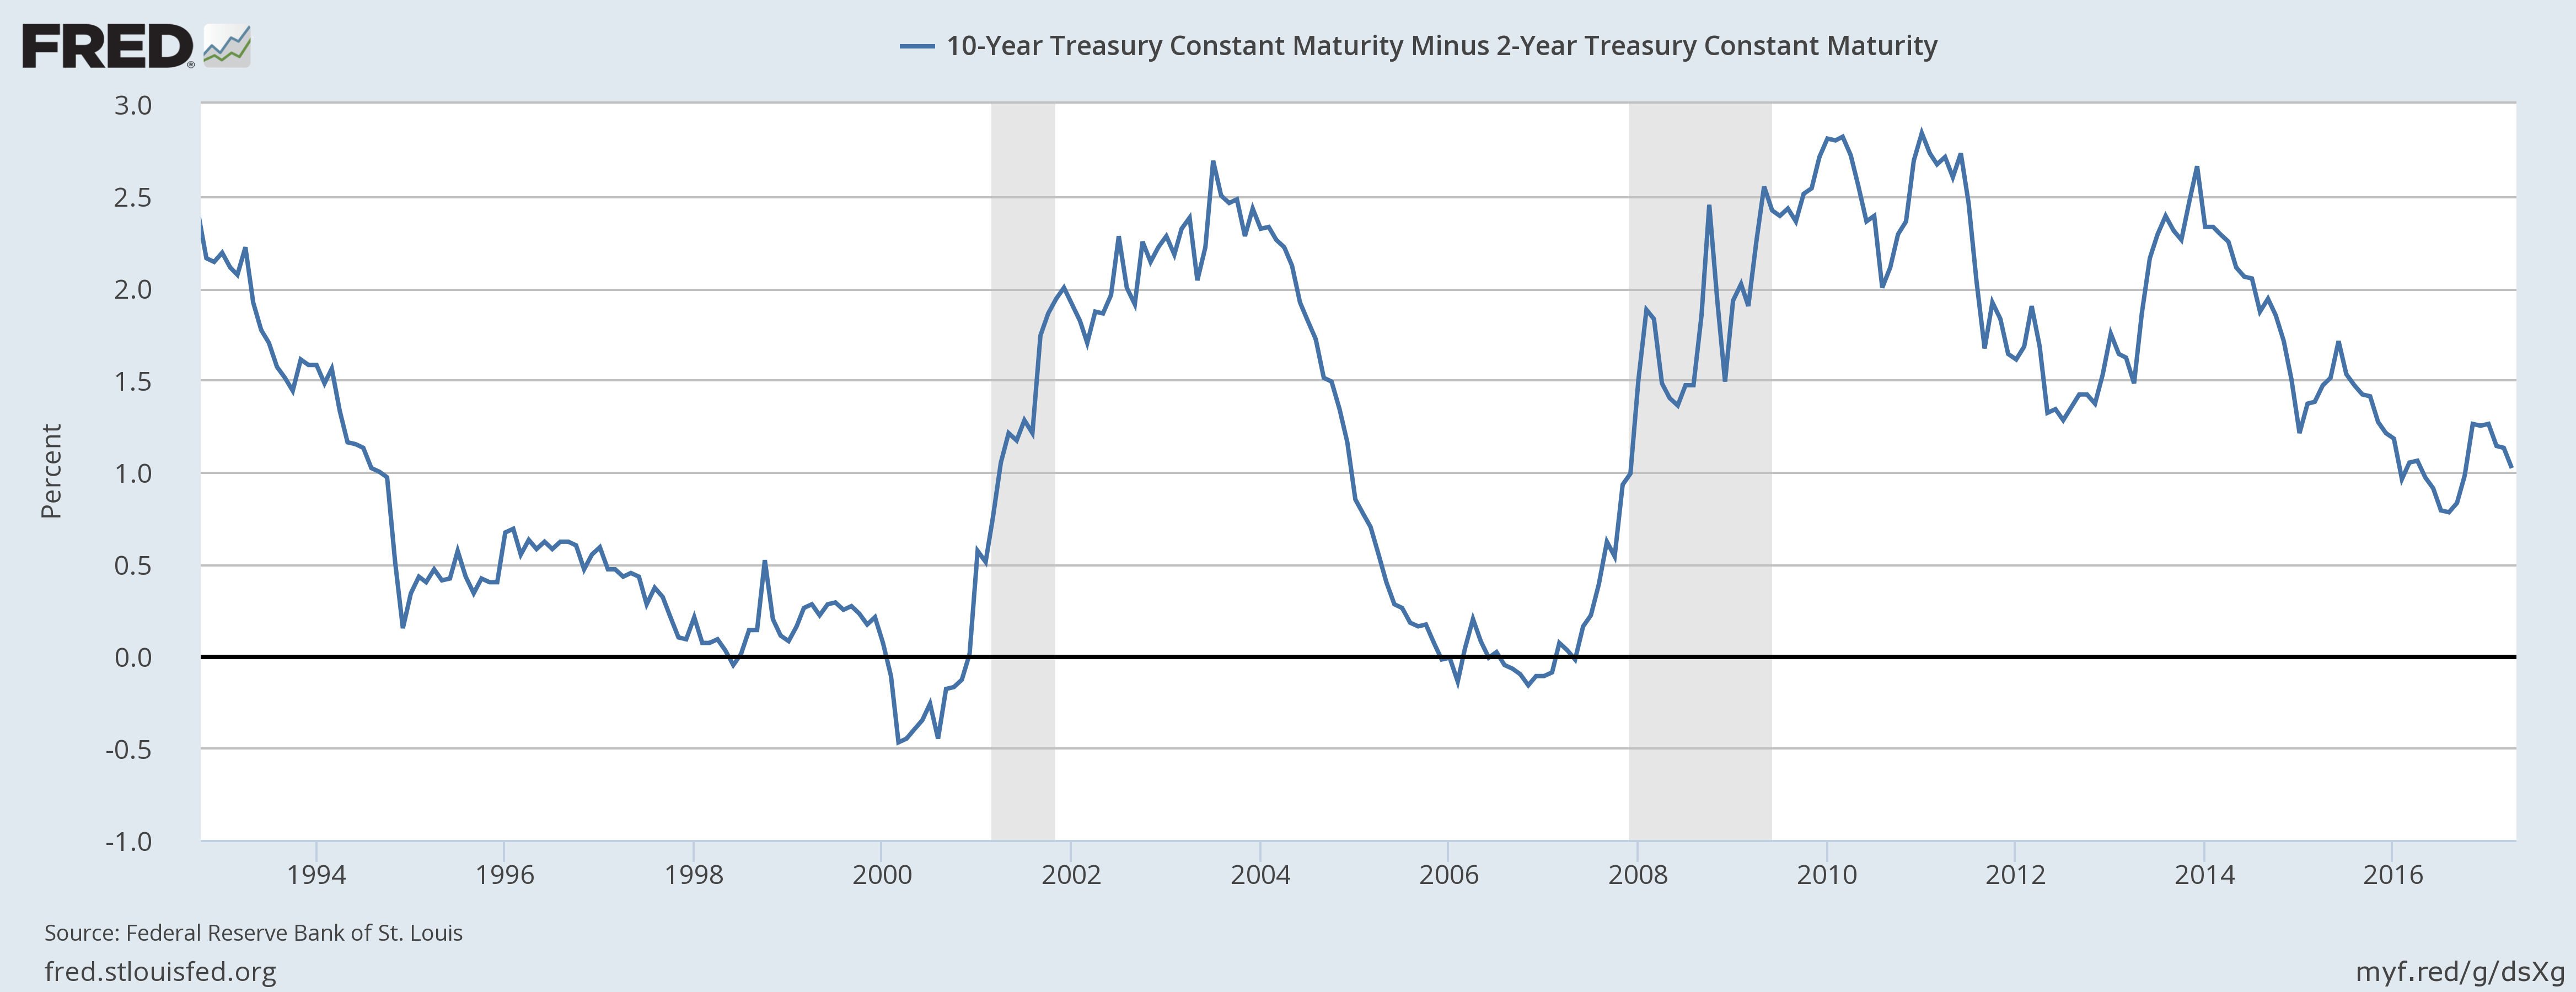 10-Year Treasury Constant Maturity, 1994 - 2016